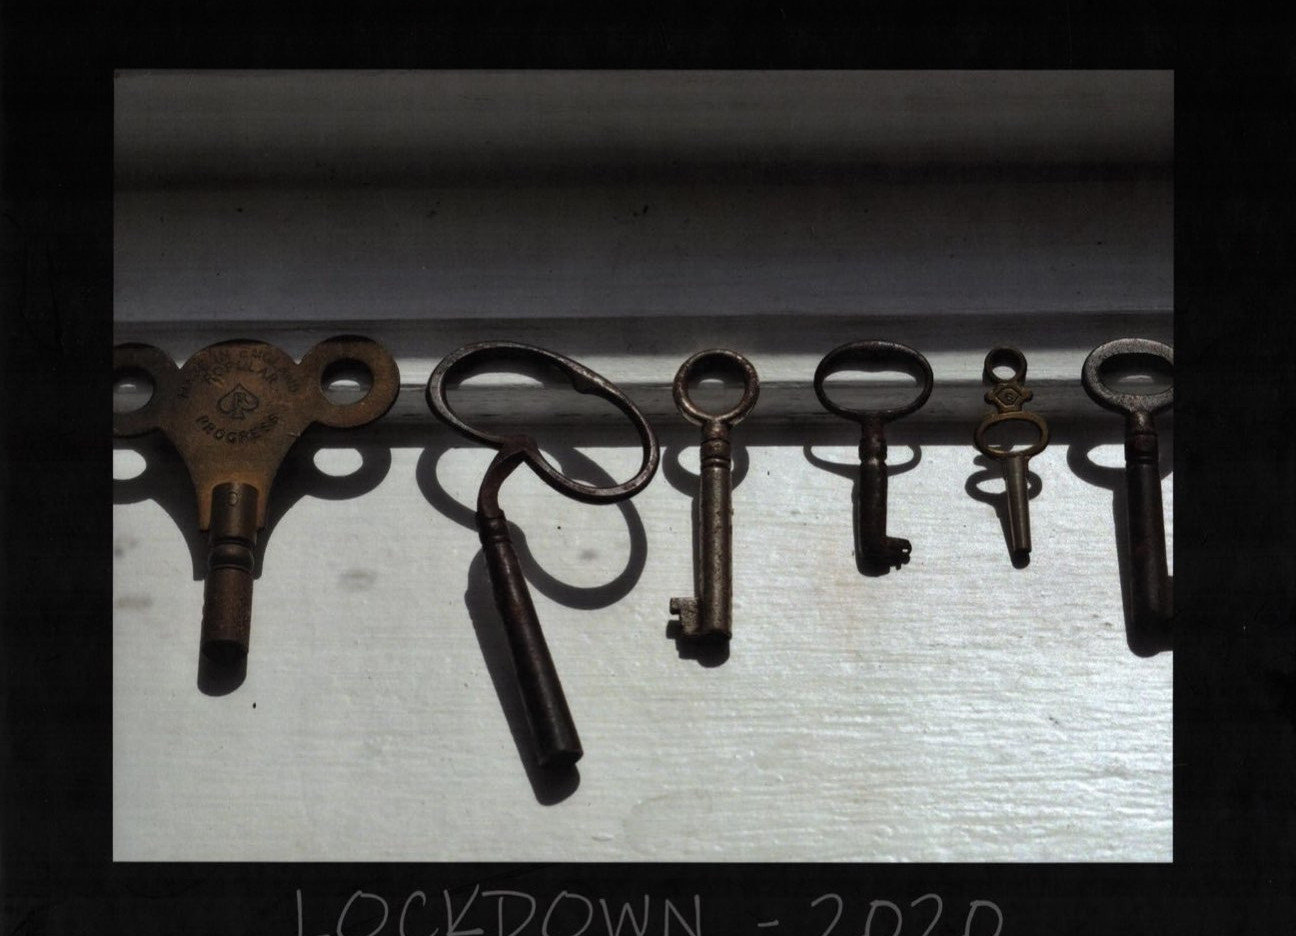 Jan King's Lockdown Album